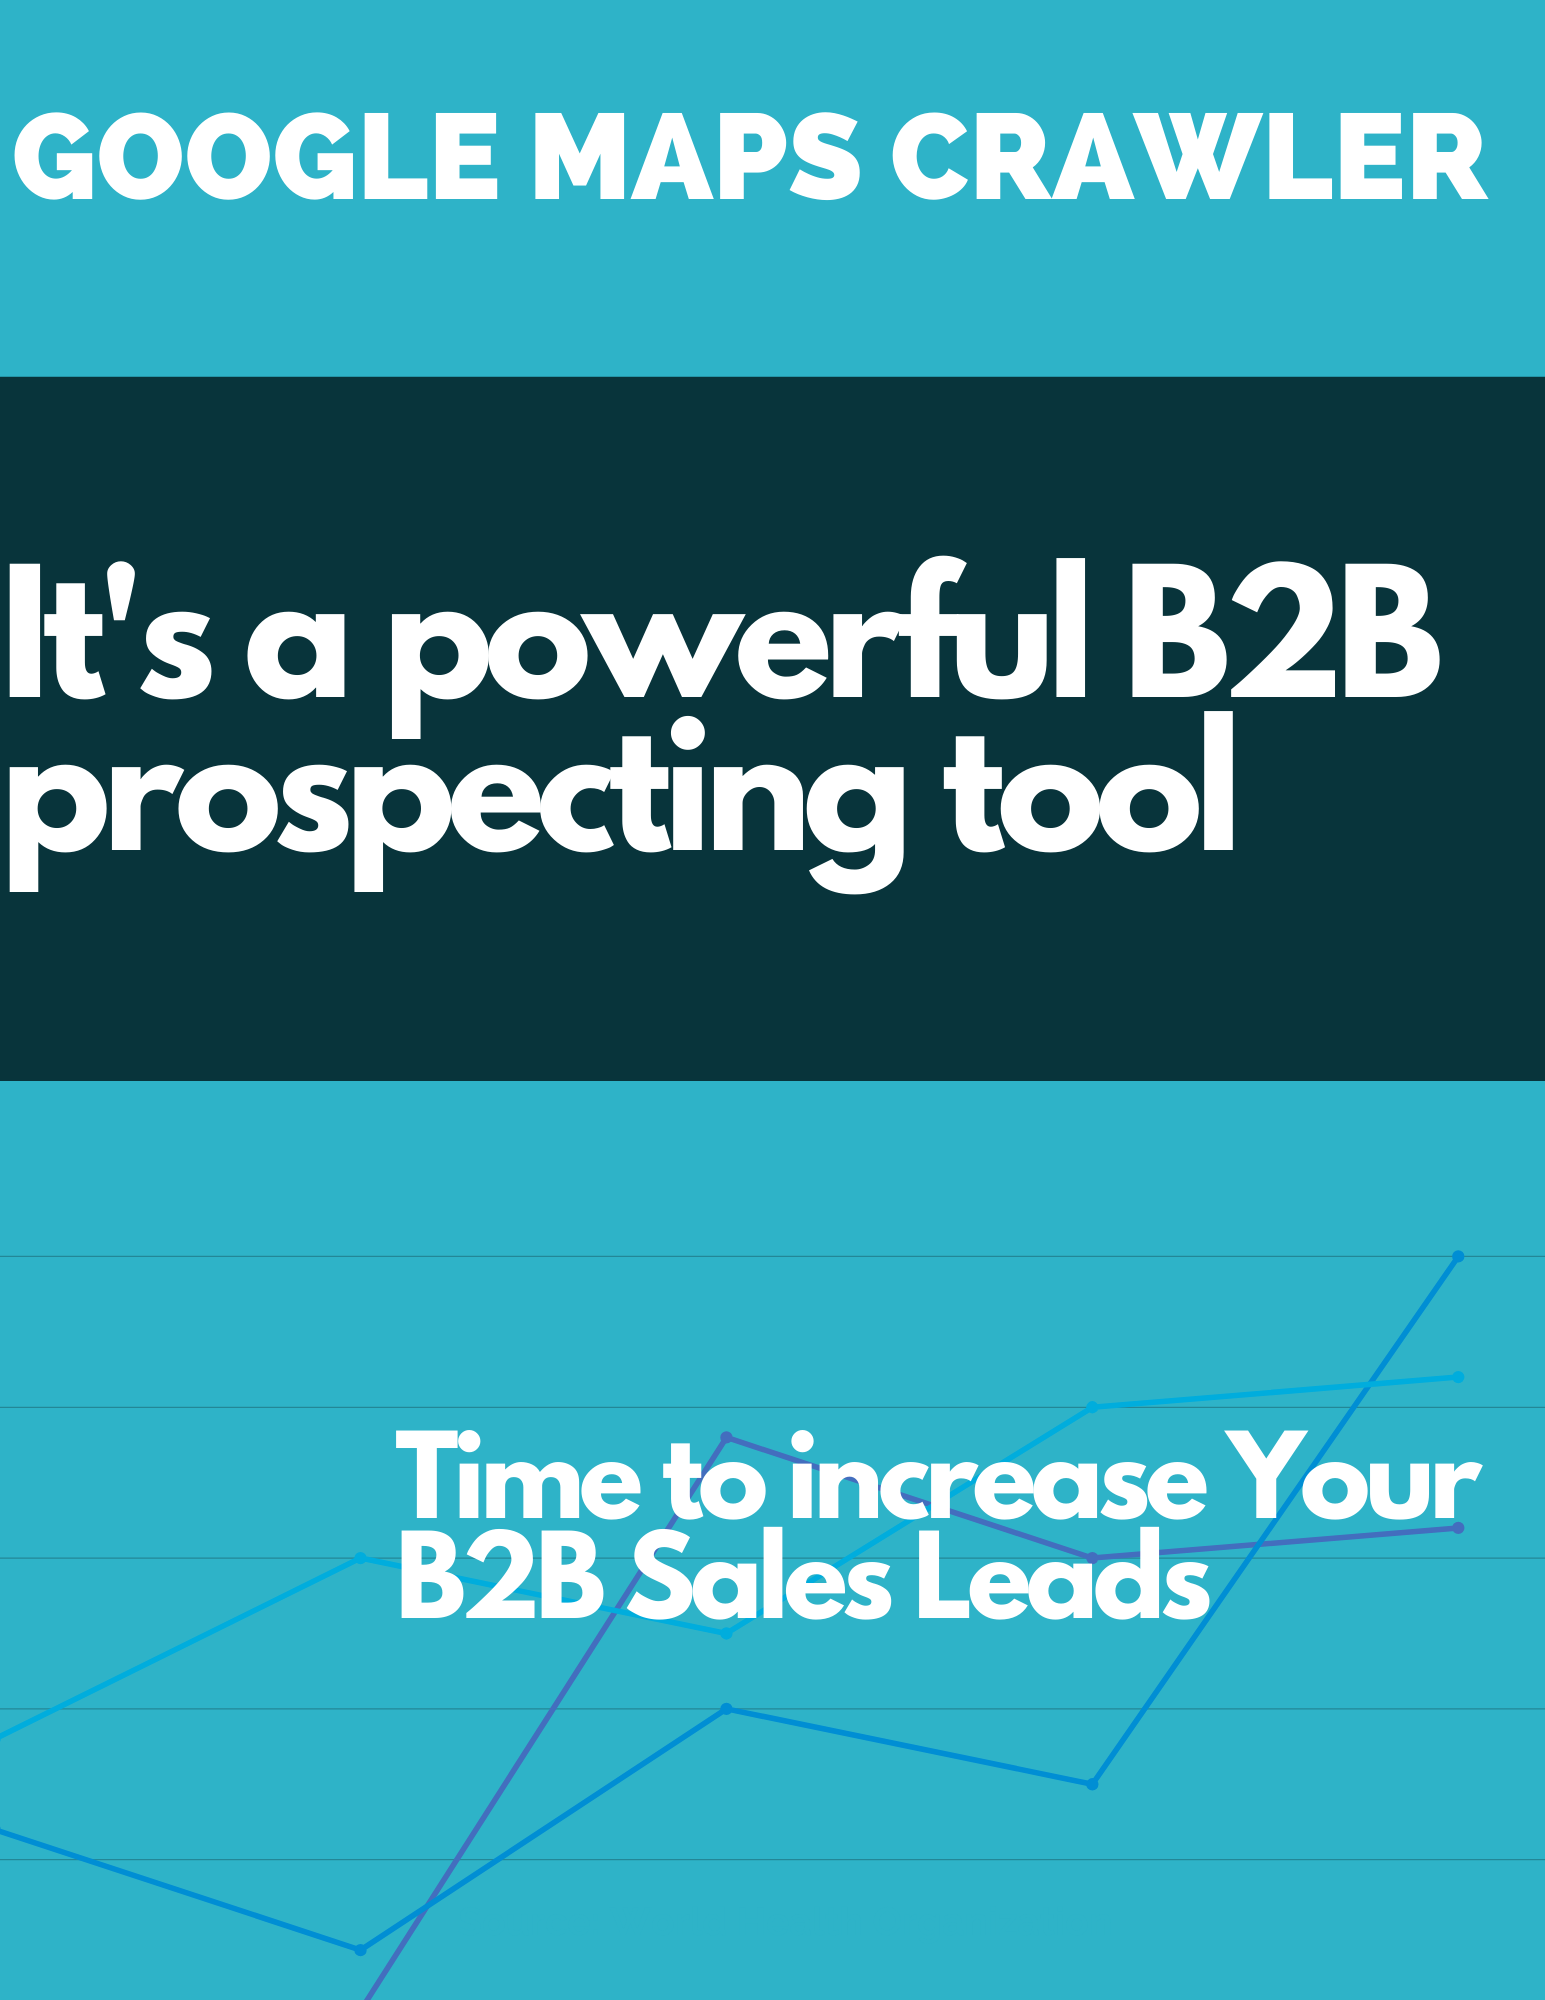 Google Maps Crawler increase your b2b leads sales